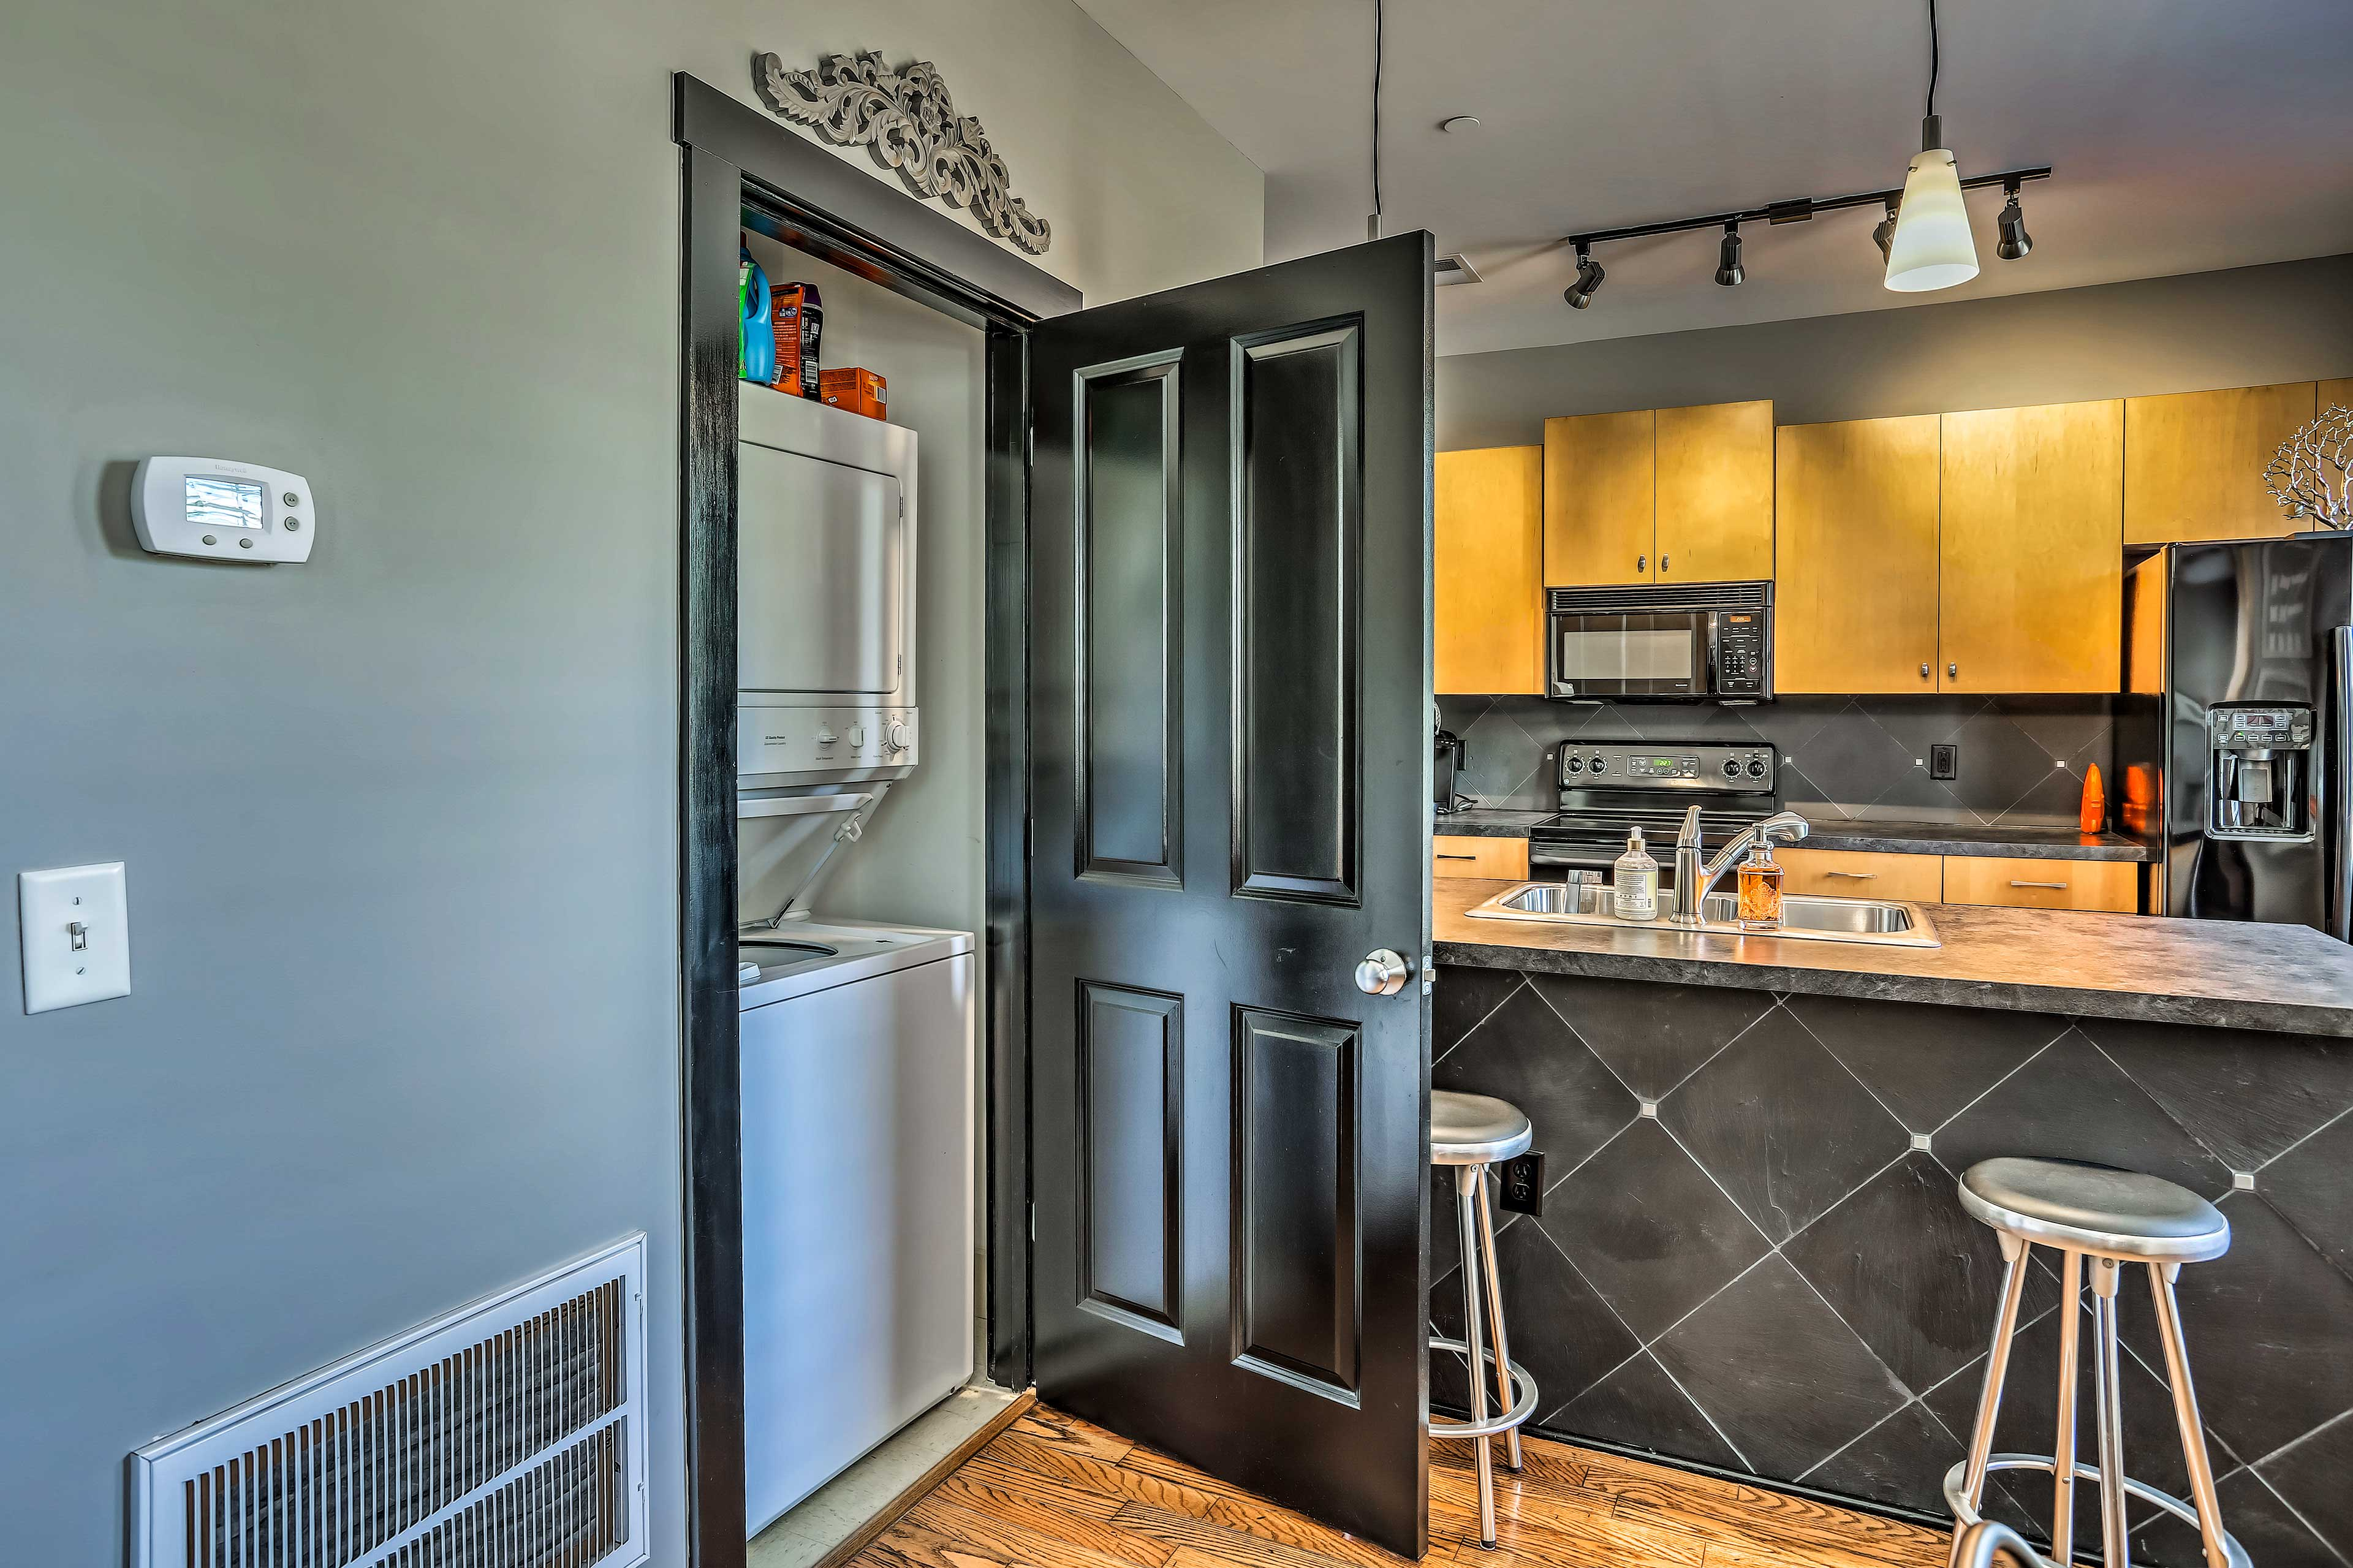 The condo also features convenient in-unit laundry machines!